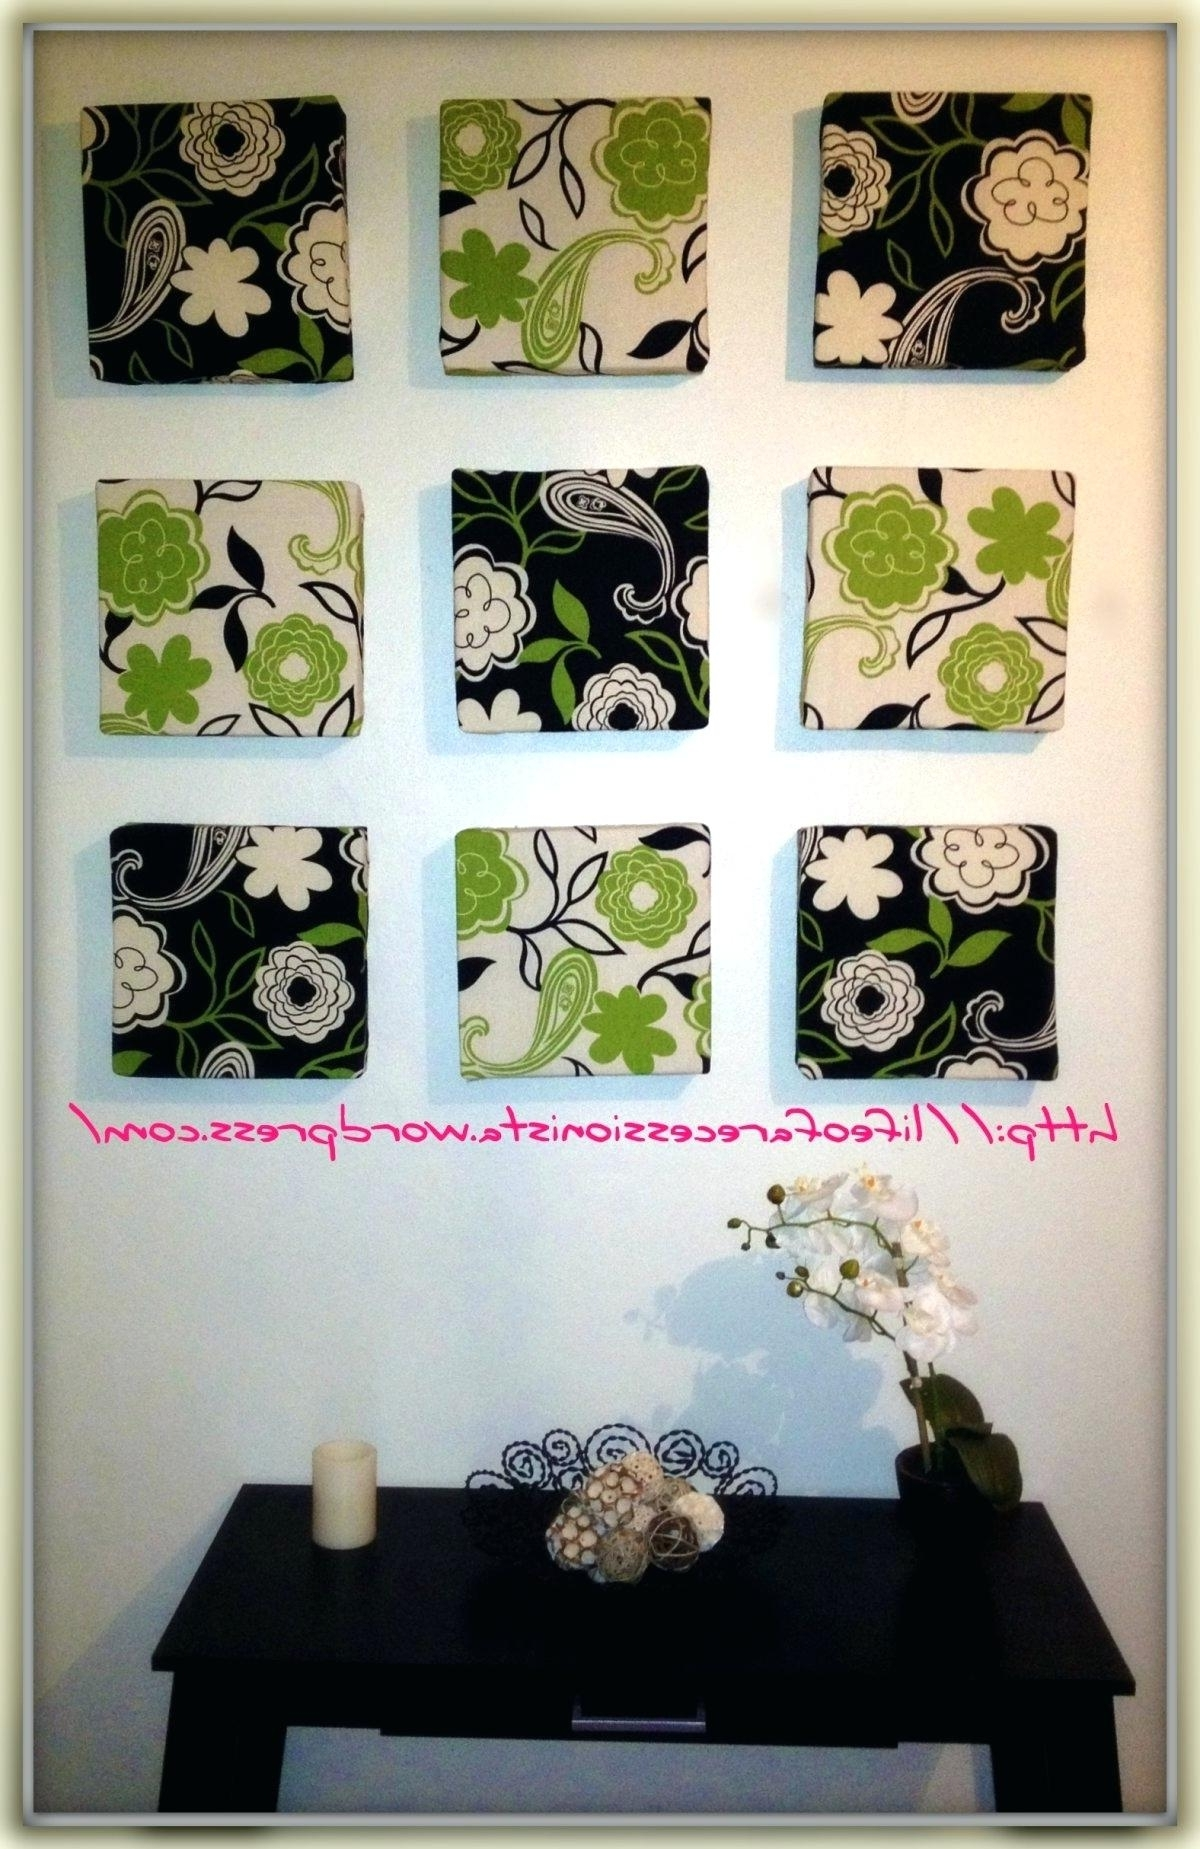 Well Known Diy Framed Fabric Wall Art Inside Decoration: Framed Fabric Wall Art Arts Frames Picture Frame Ideas (View 15 of 15)